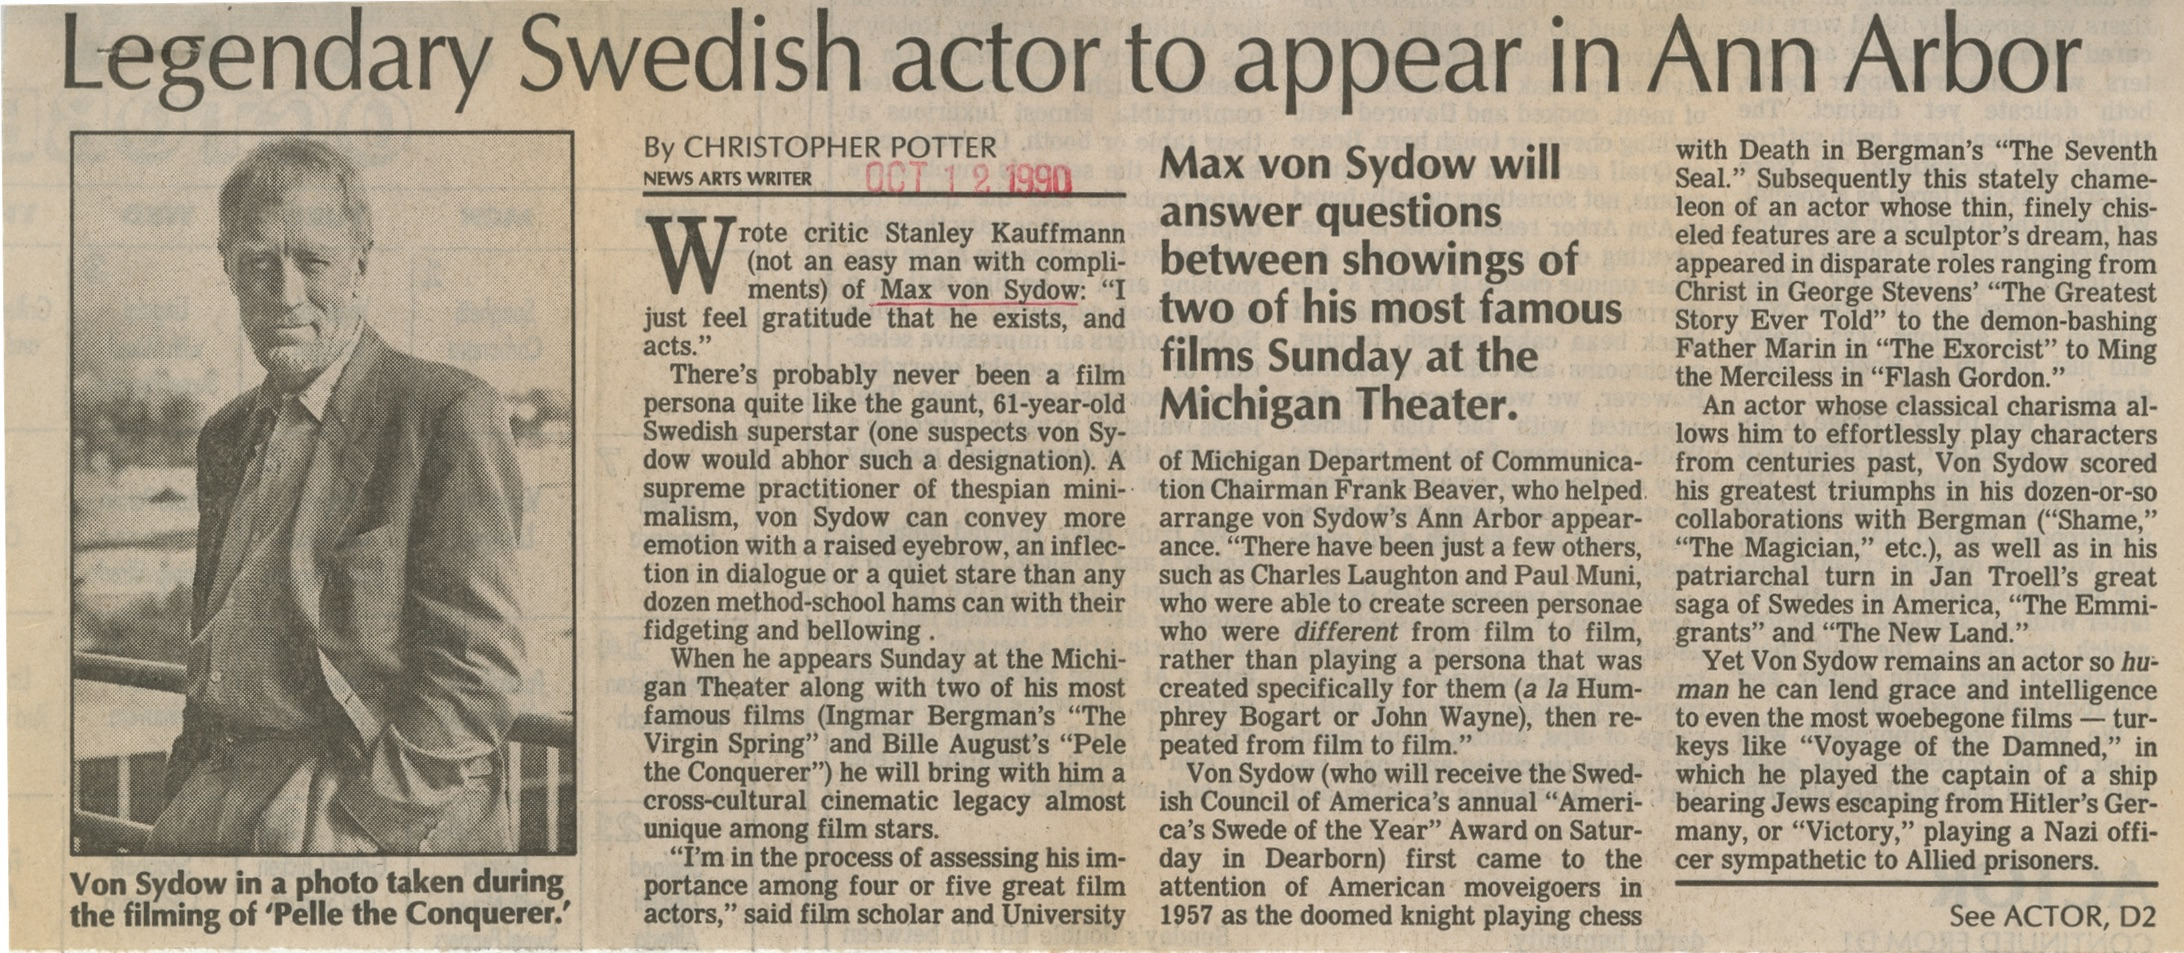 Legendary Swedish actor to appear in Ann Arbor image